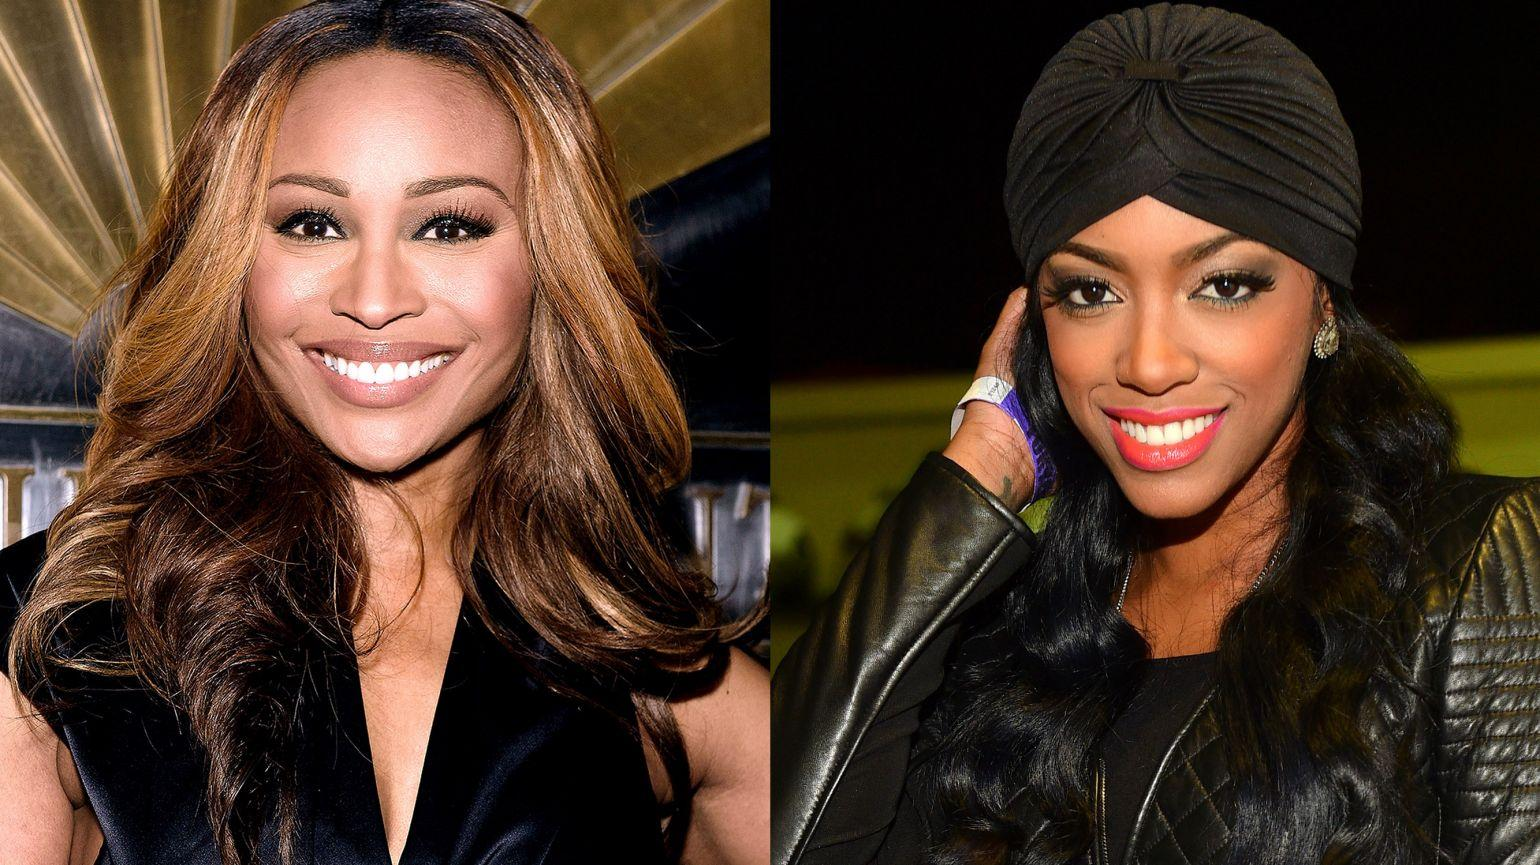 Porsha Williams Looks Like A Queen At Cynthia Bailey's Birthday Party - She Praises Their 'Rollercoaster Relationship'